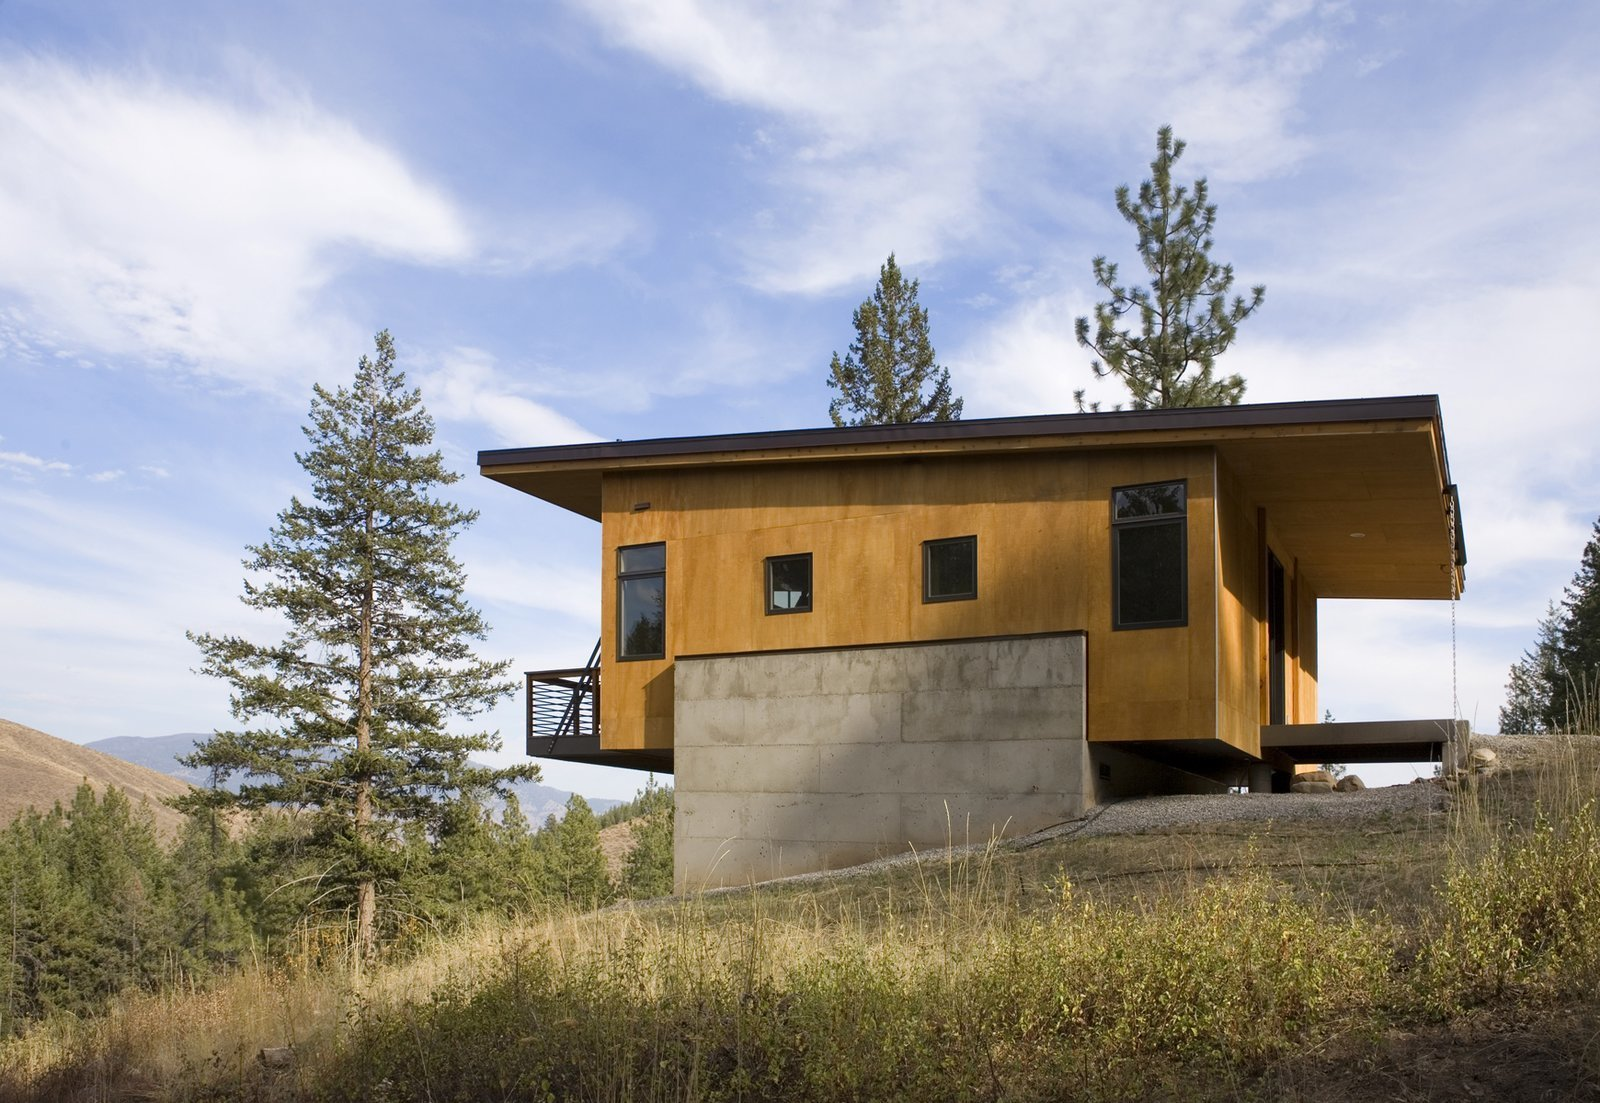 Simple Cabin Embraces Its Mountain Setting by Zachary Edelson